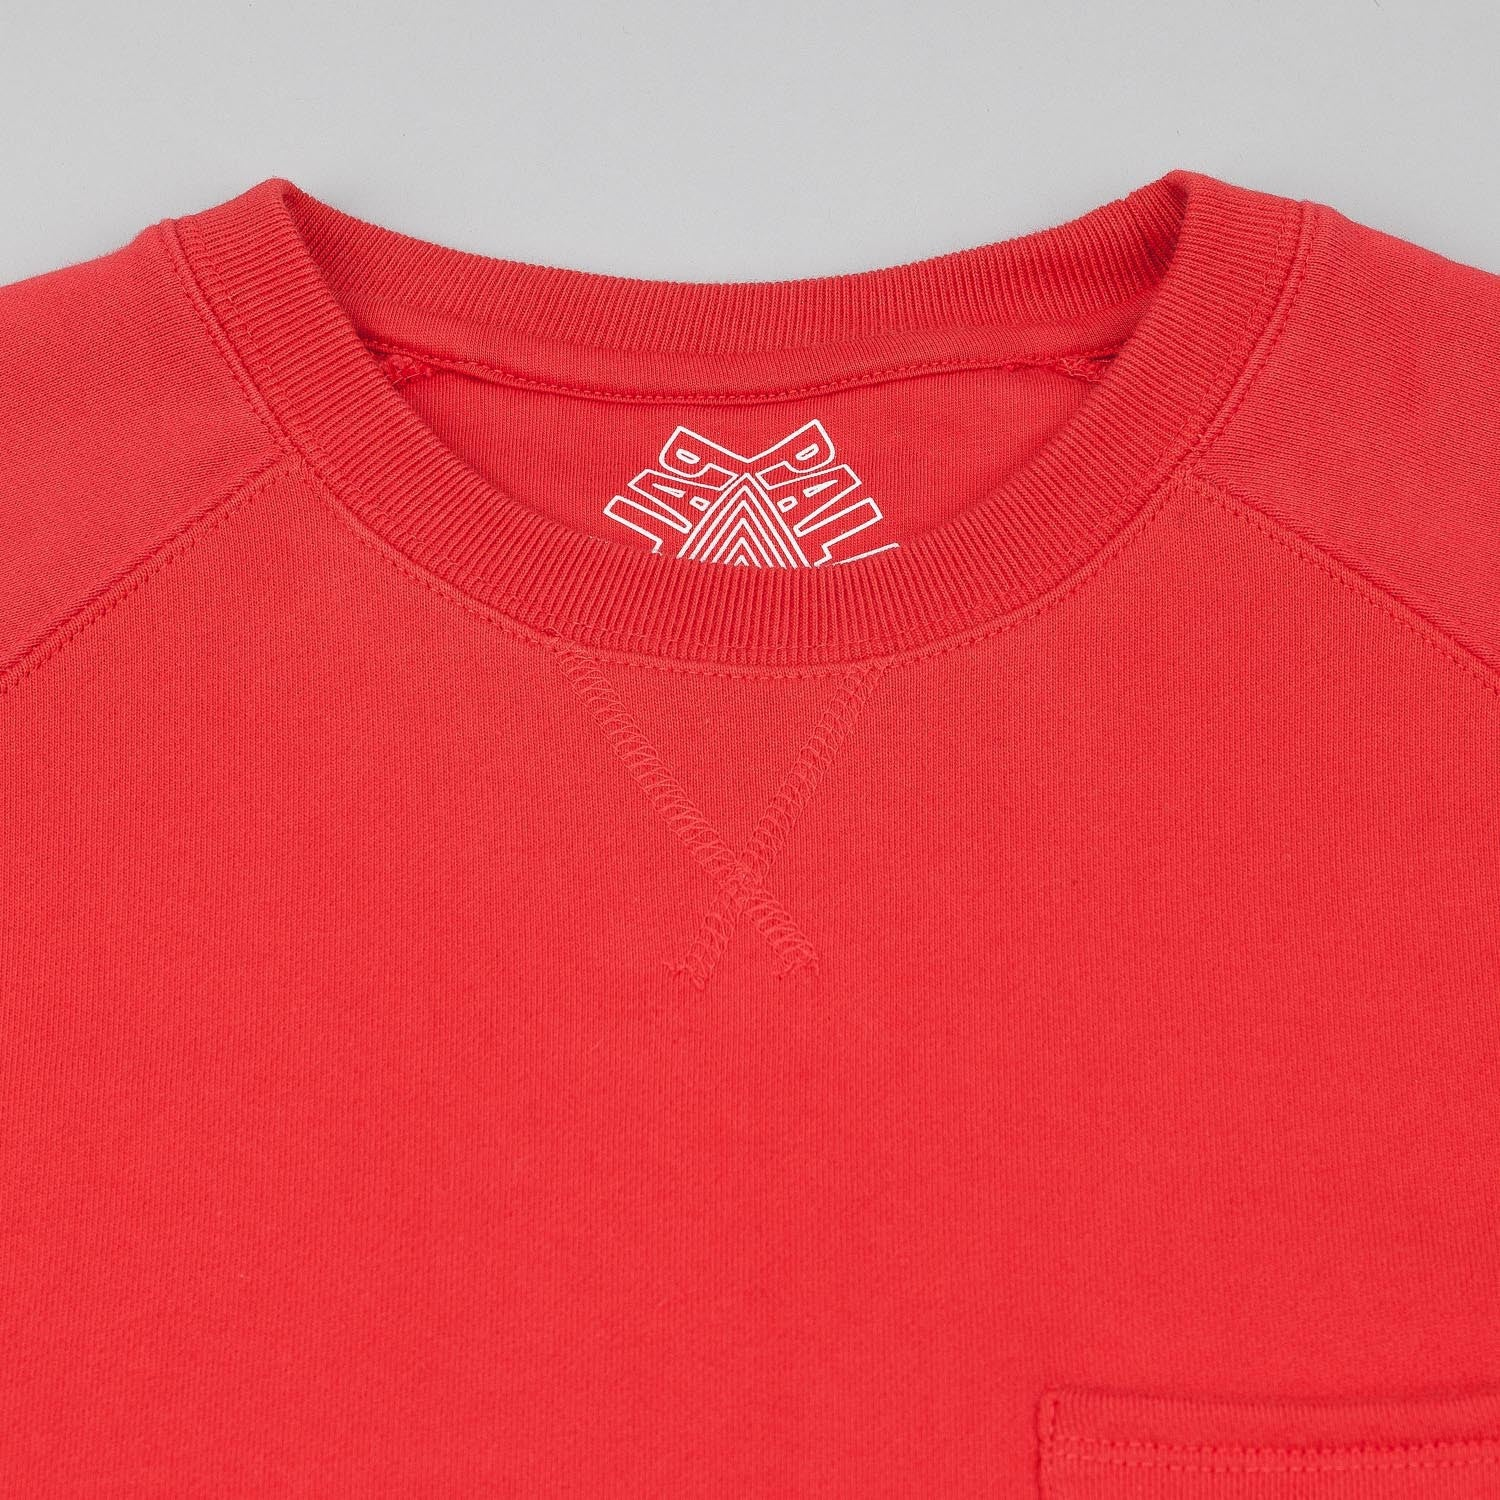 Palace Lips Crew Neck Sweatshirt - Red